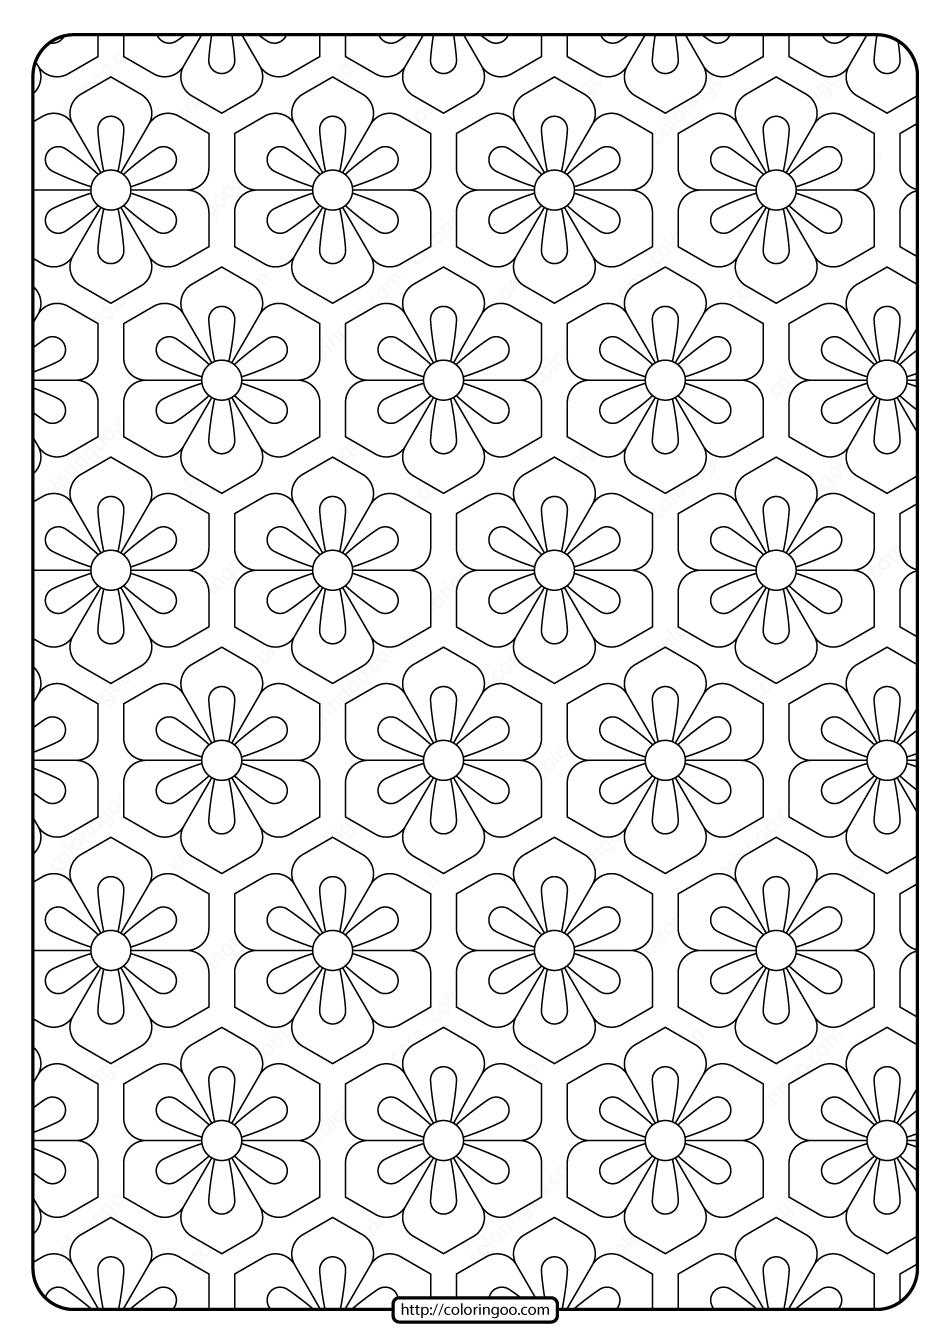 Printable Flower Geometric Pattern Coloring Page 01